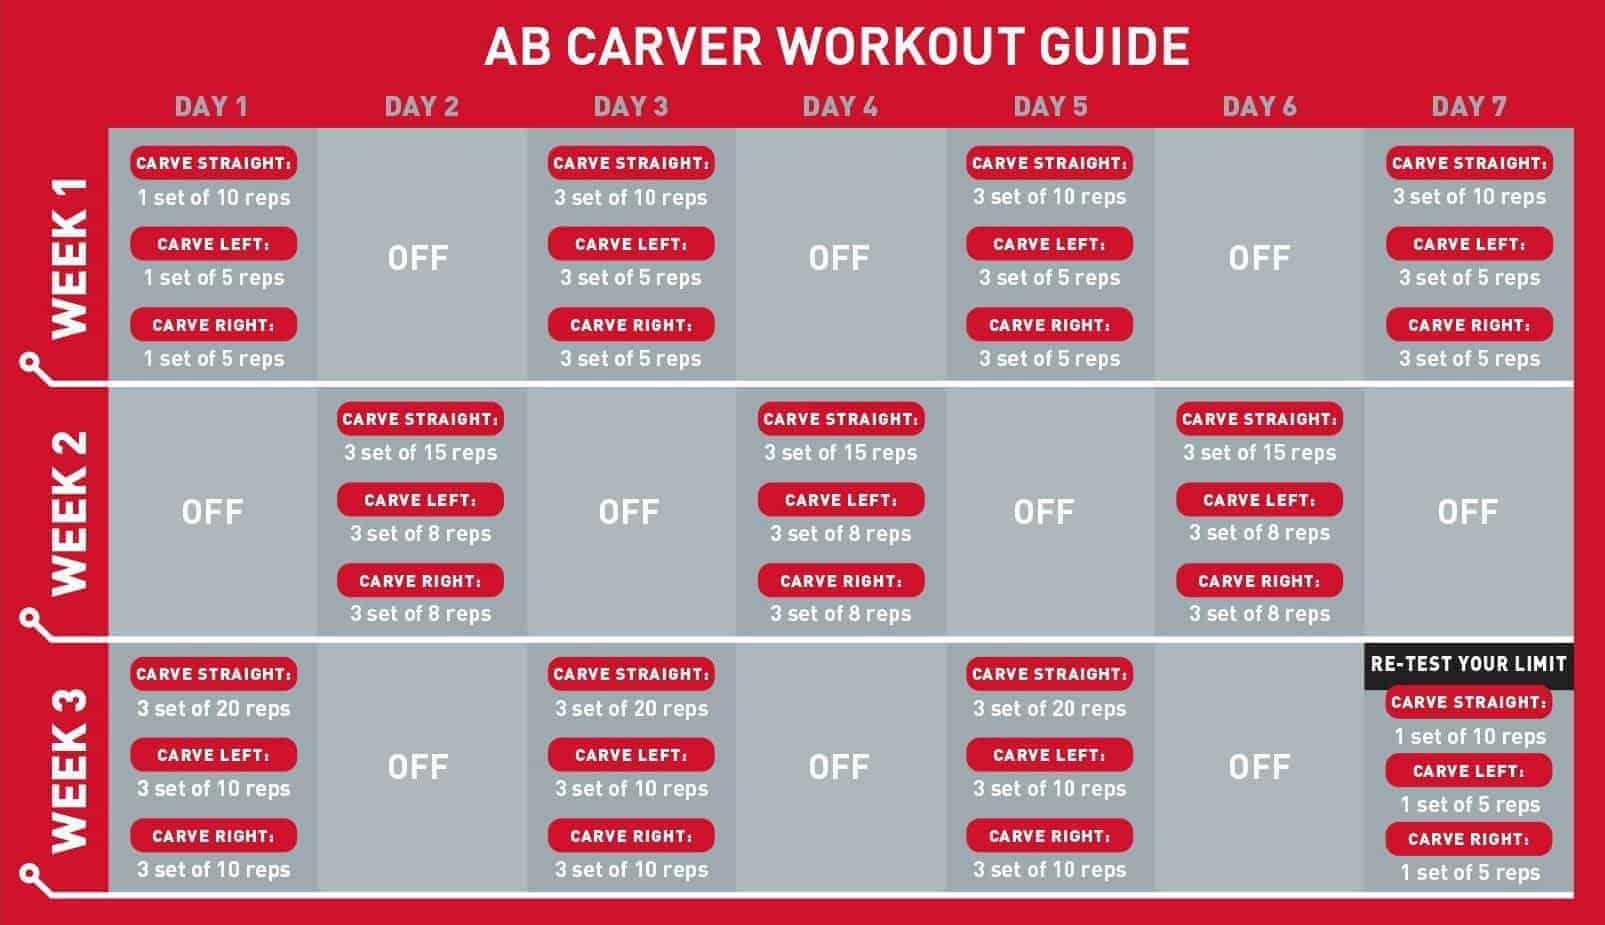 Work Ab Does Carver